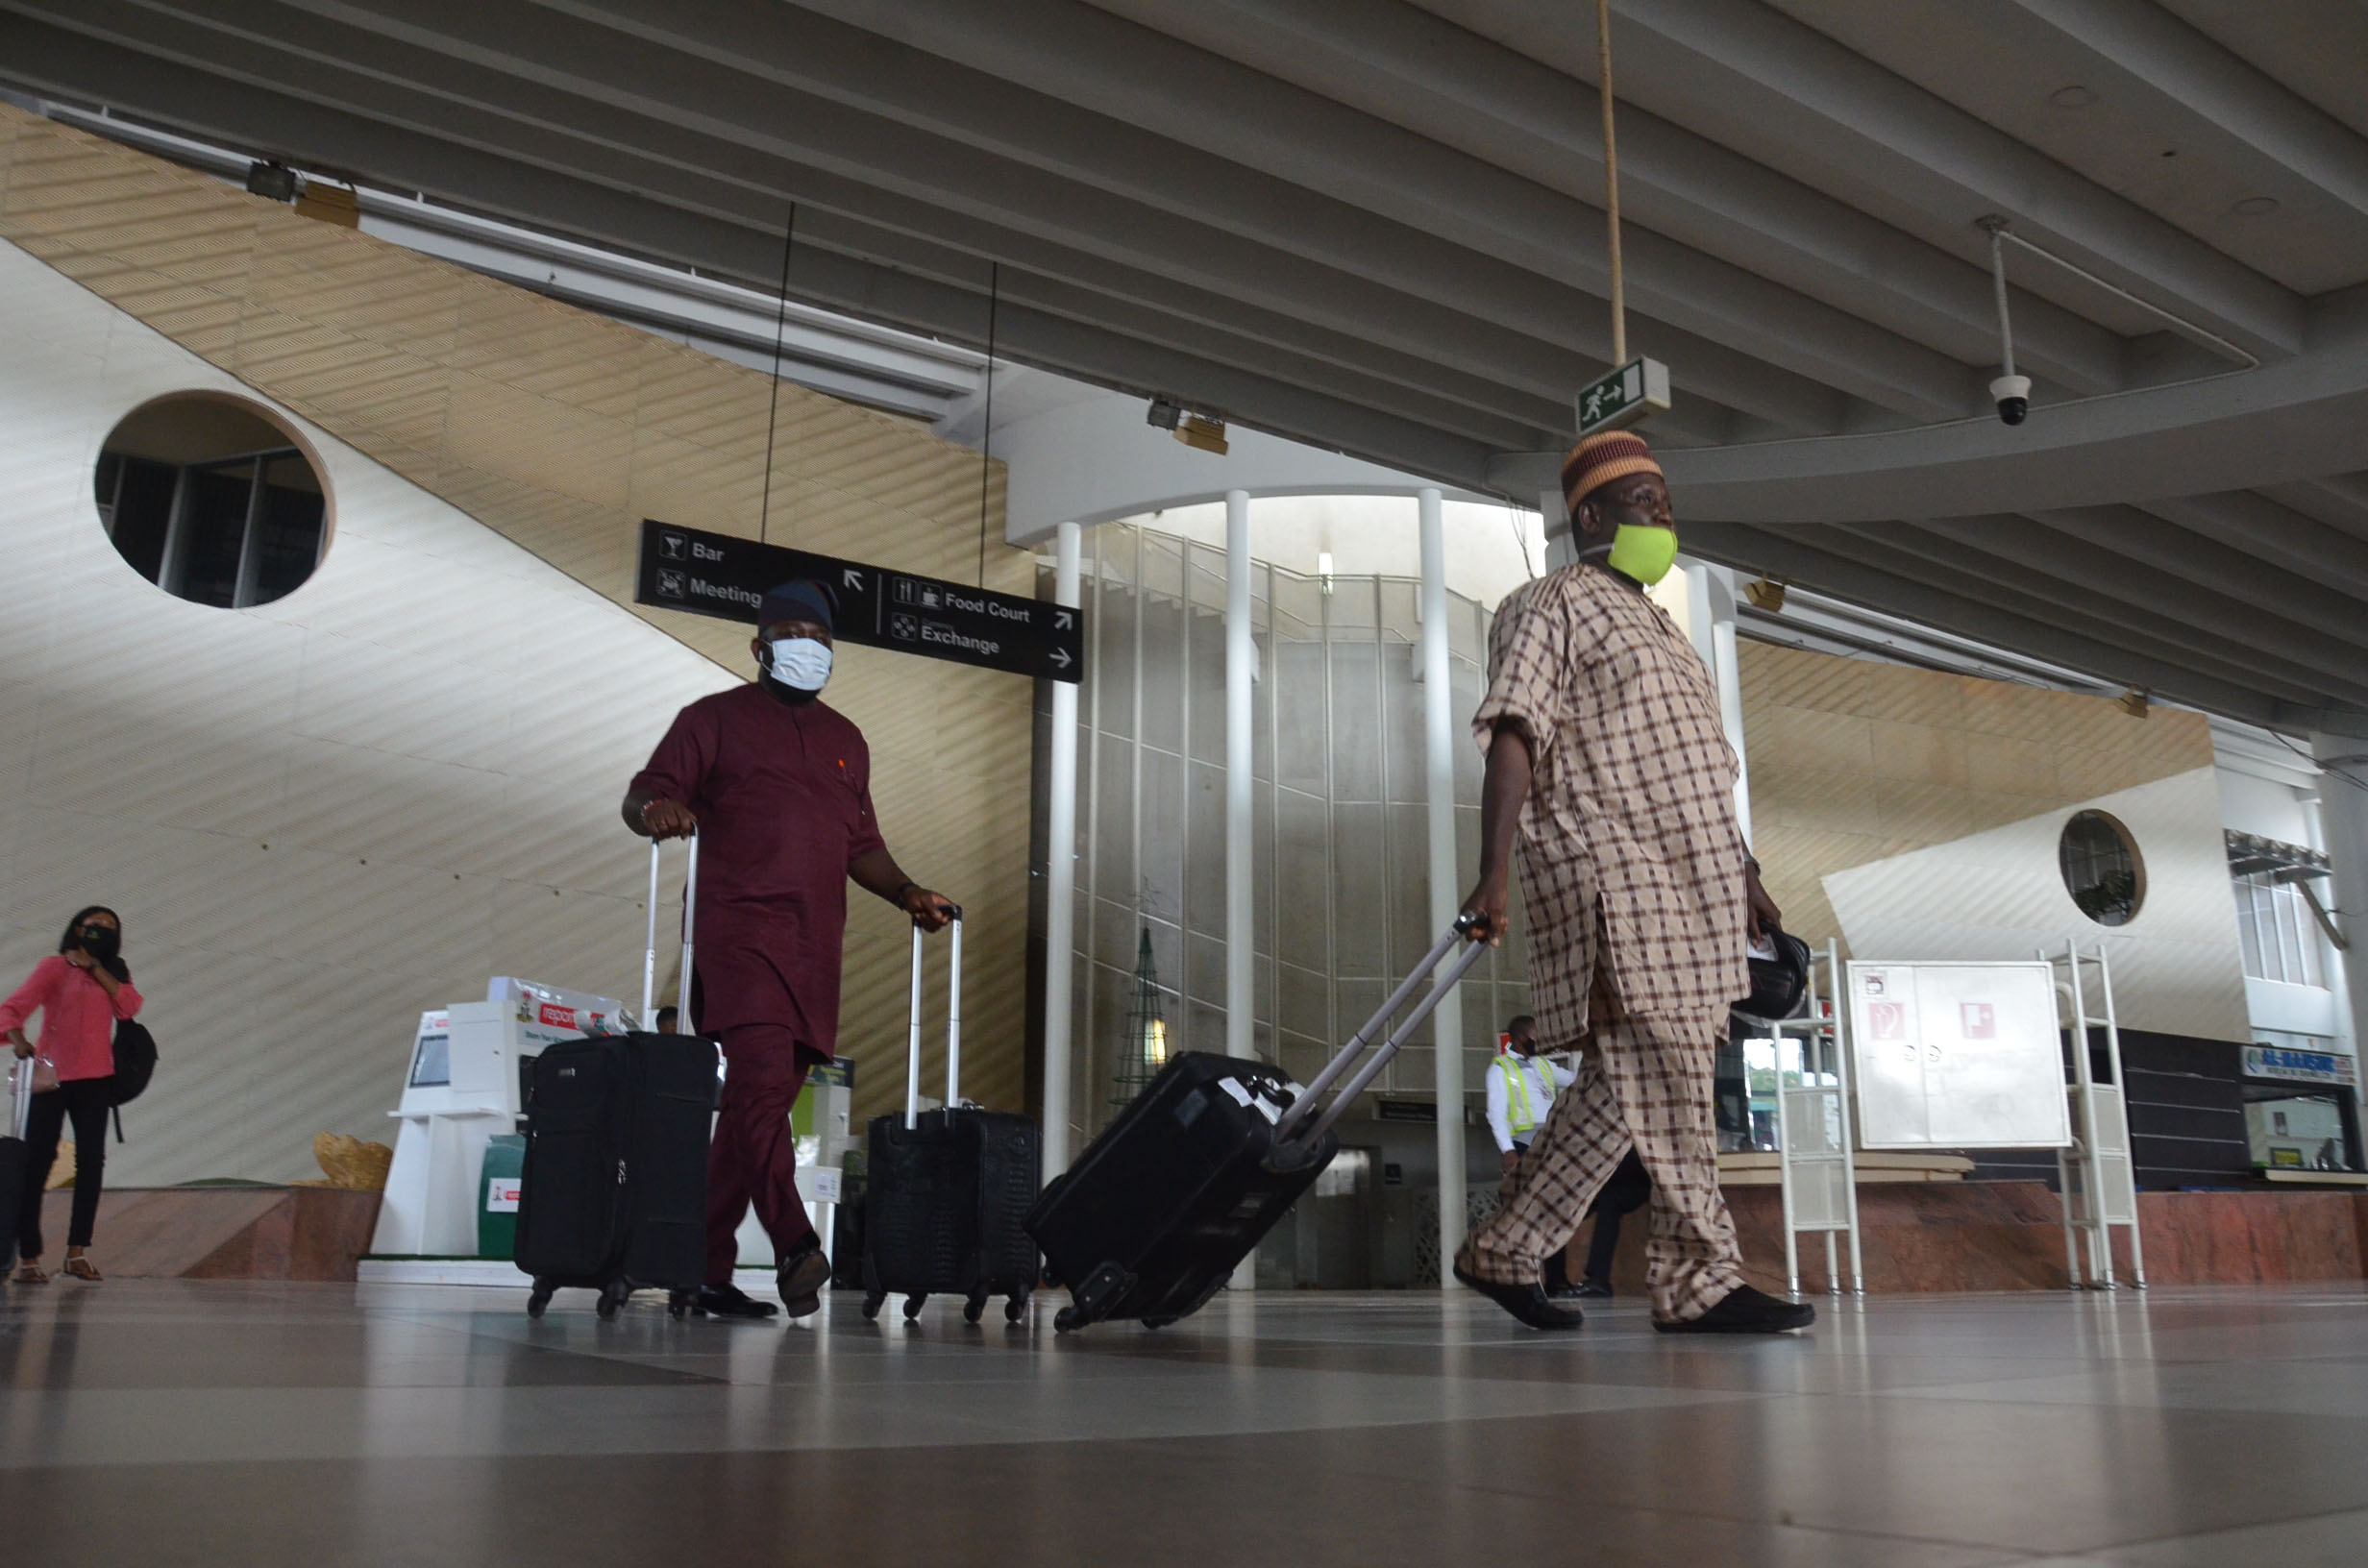 Passengers walk in the terminal building at the airport in Abuja, Nigeria, on July 8.